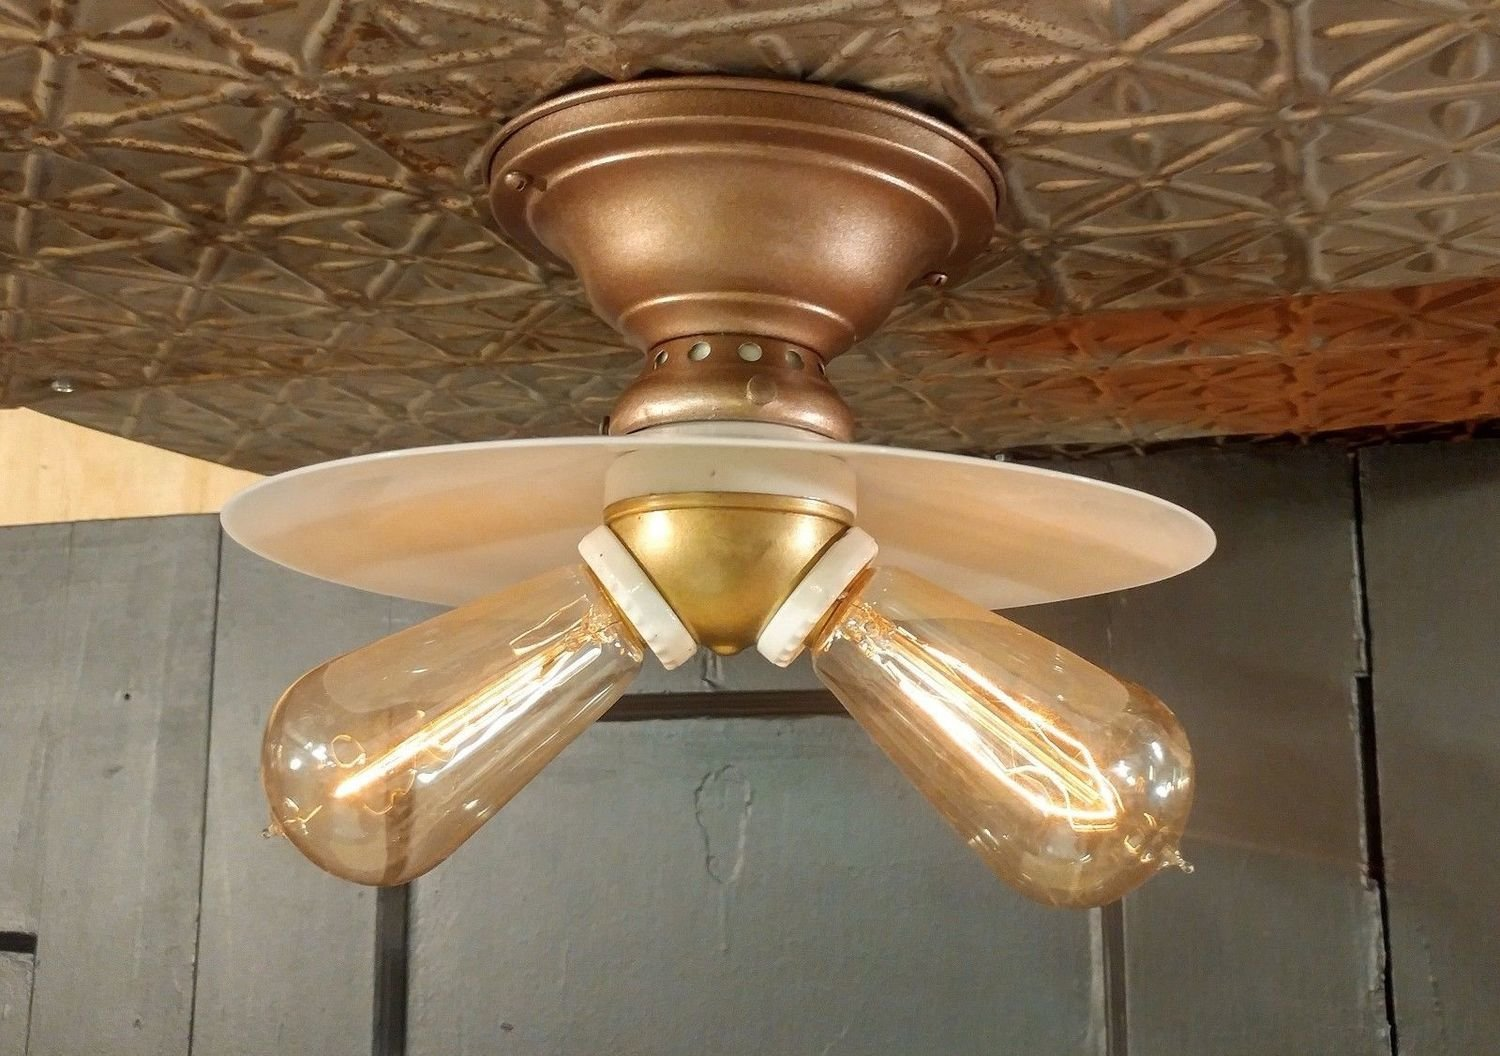 Copper Ceiling Fixture with Flat Milk Glass Shade and 2 Bulb Cluster